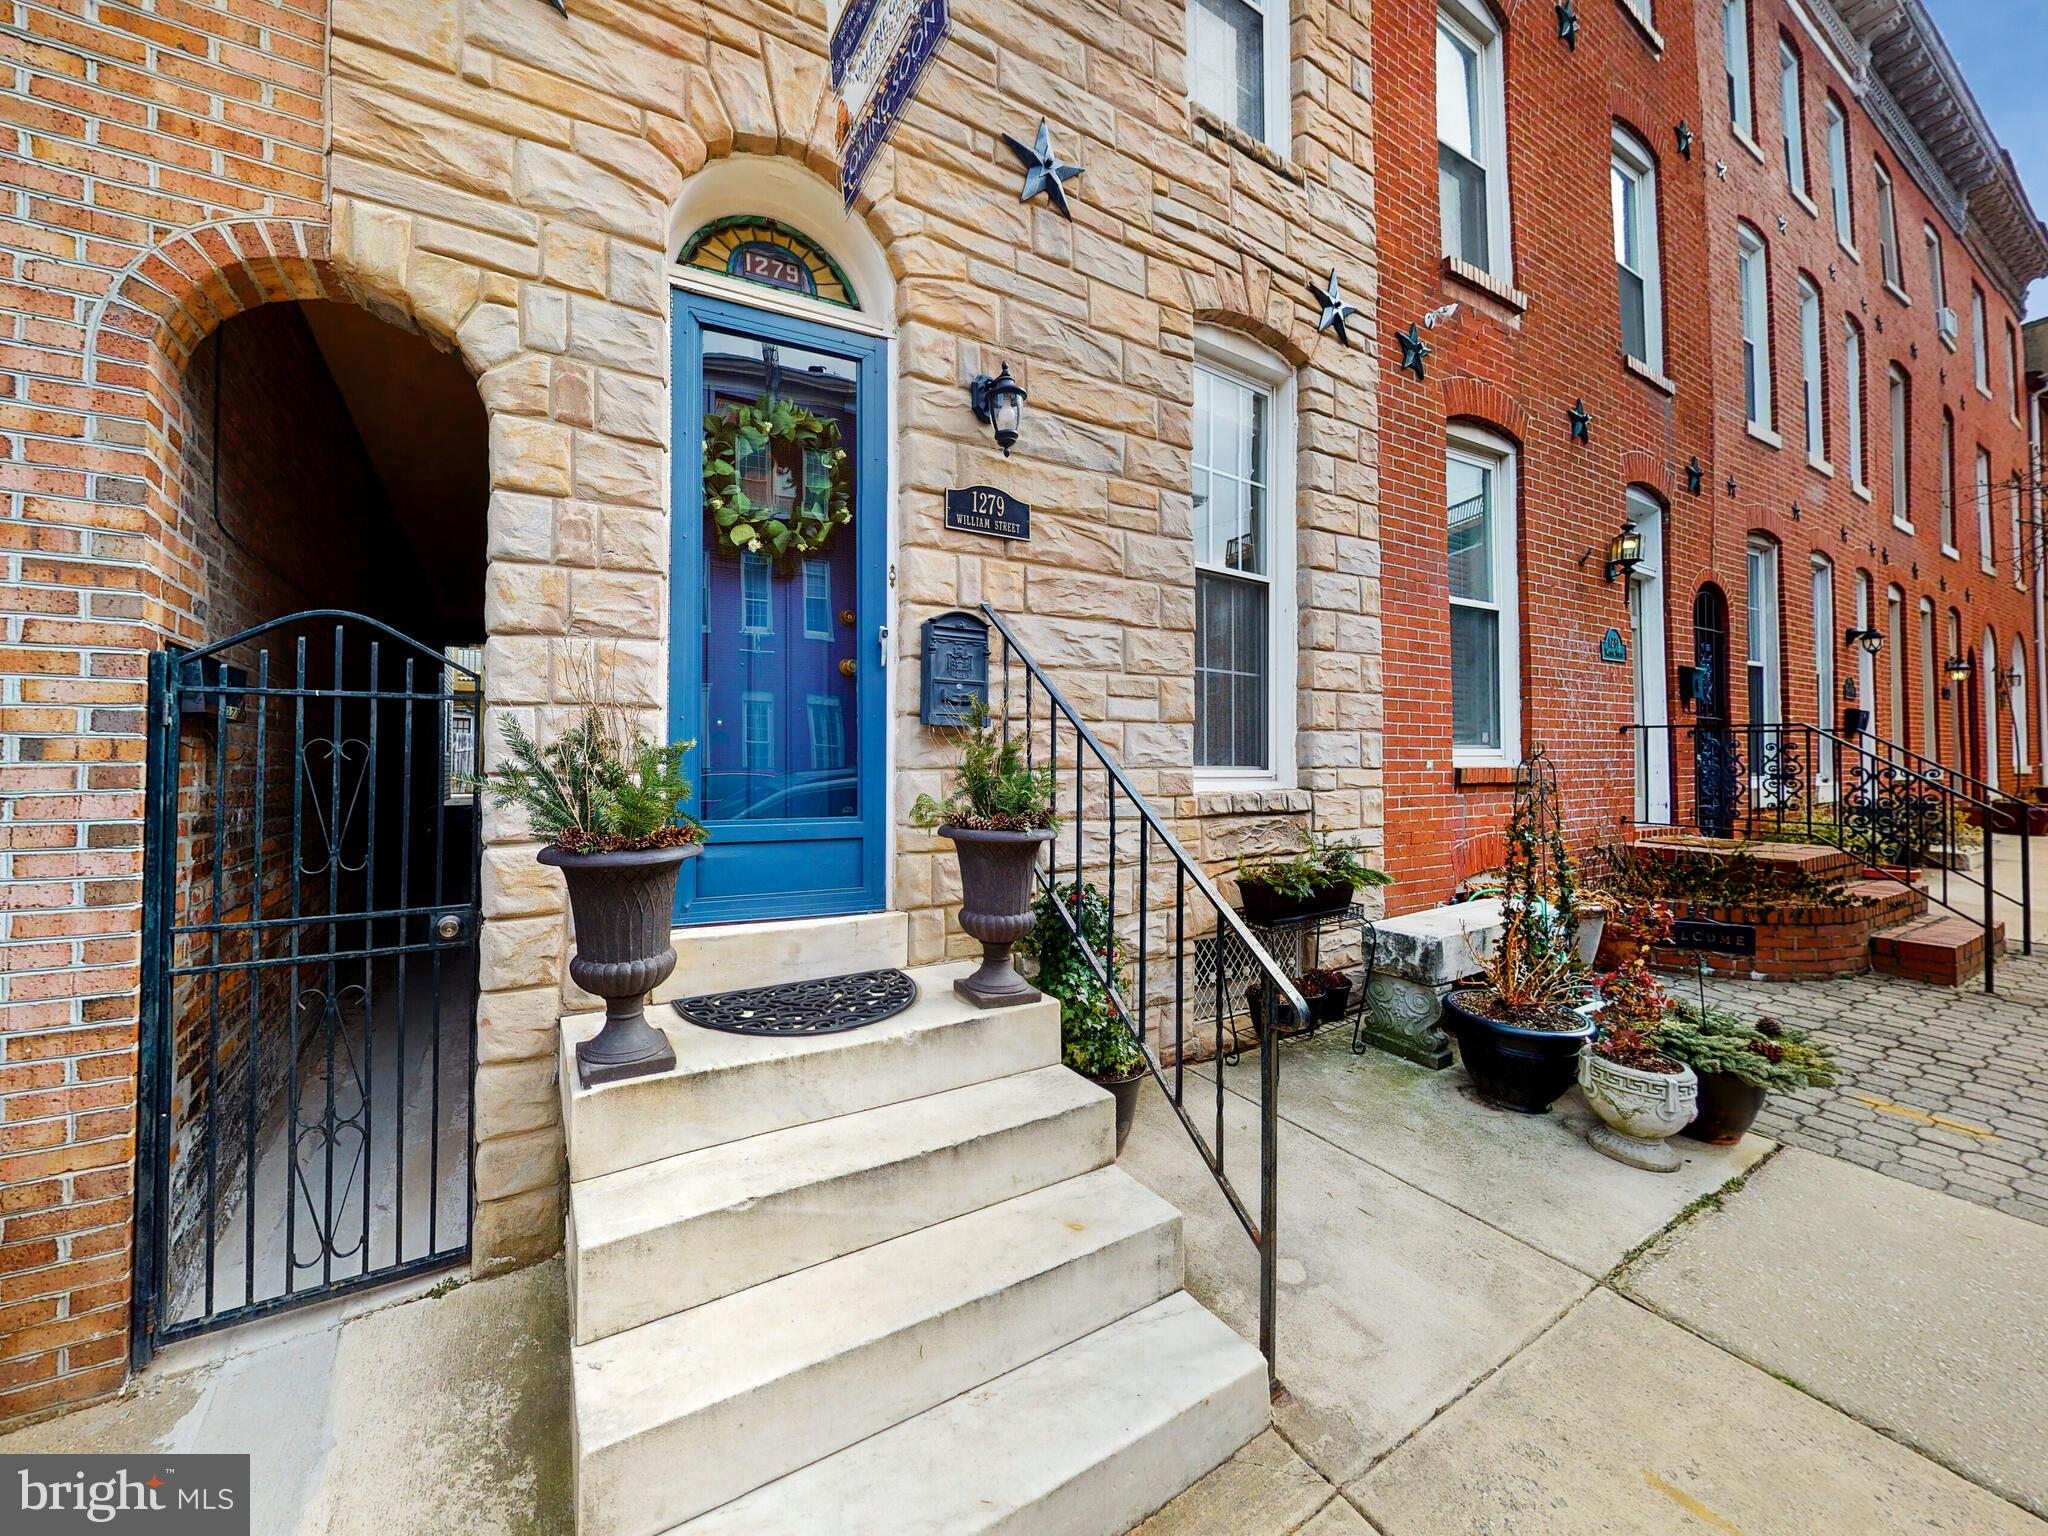 This quintessential Federal Hill home located on one of the area's most desired streets features large sun-filled rooms accented with extensive millwork, exposed brick, and hardwood floors with inlays. The main level conveys 9 ft. high ceilings; marble fireplace; powder room; chair rail and picture frame molding; and built-in cabinets for storage. The center hall's exterior door opens to breezeway which provides convenient access to both front and back of home. Formal dining room leads to a huge kitchen that offers tons of cabinets, two sinks, and granite counter tops with large prep space for cooking. Second floor boasts two large bedrooms, both with en suite bathrooms; walk-in closet; washer & dryer. Walk up to the third floor where you'll be in awe of the bright sunroom with too many windows to count. Perfect for entertaining or relaxing, the third floor also features a wet/dry bar wired for surround sound; another huge bedroom and en suite bathroom; and French doors leading to the first spacious deck. Follow the interior spiral staircase leading to loft space that opens up to an another rooftop deck where you'll experience 360-degree skyline views of the city and hear the roar of the crowds from M&T Bank Stadium and Camden Yards (no better house for game days!). Dual zone HVAC, tons of basement storage, Vivent security system throughout entire home, and parking pad in back. Quick walk to Federal Hill & Riverside Parks, downtown attractions, Cross St. Market, and some of Baltimore's best bars and restaurants.